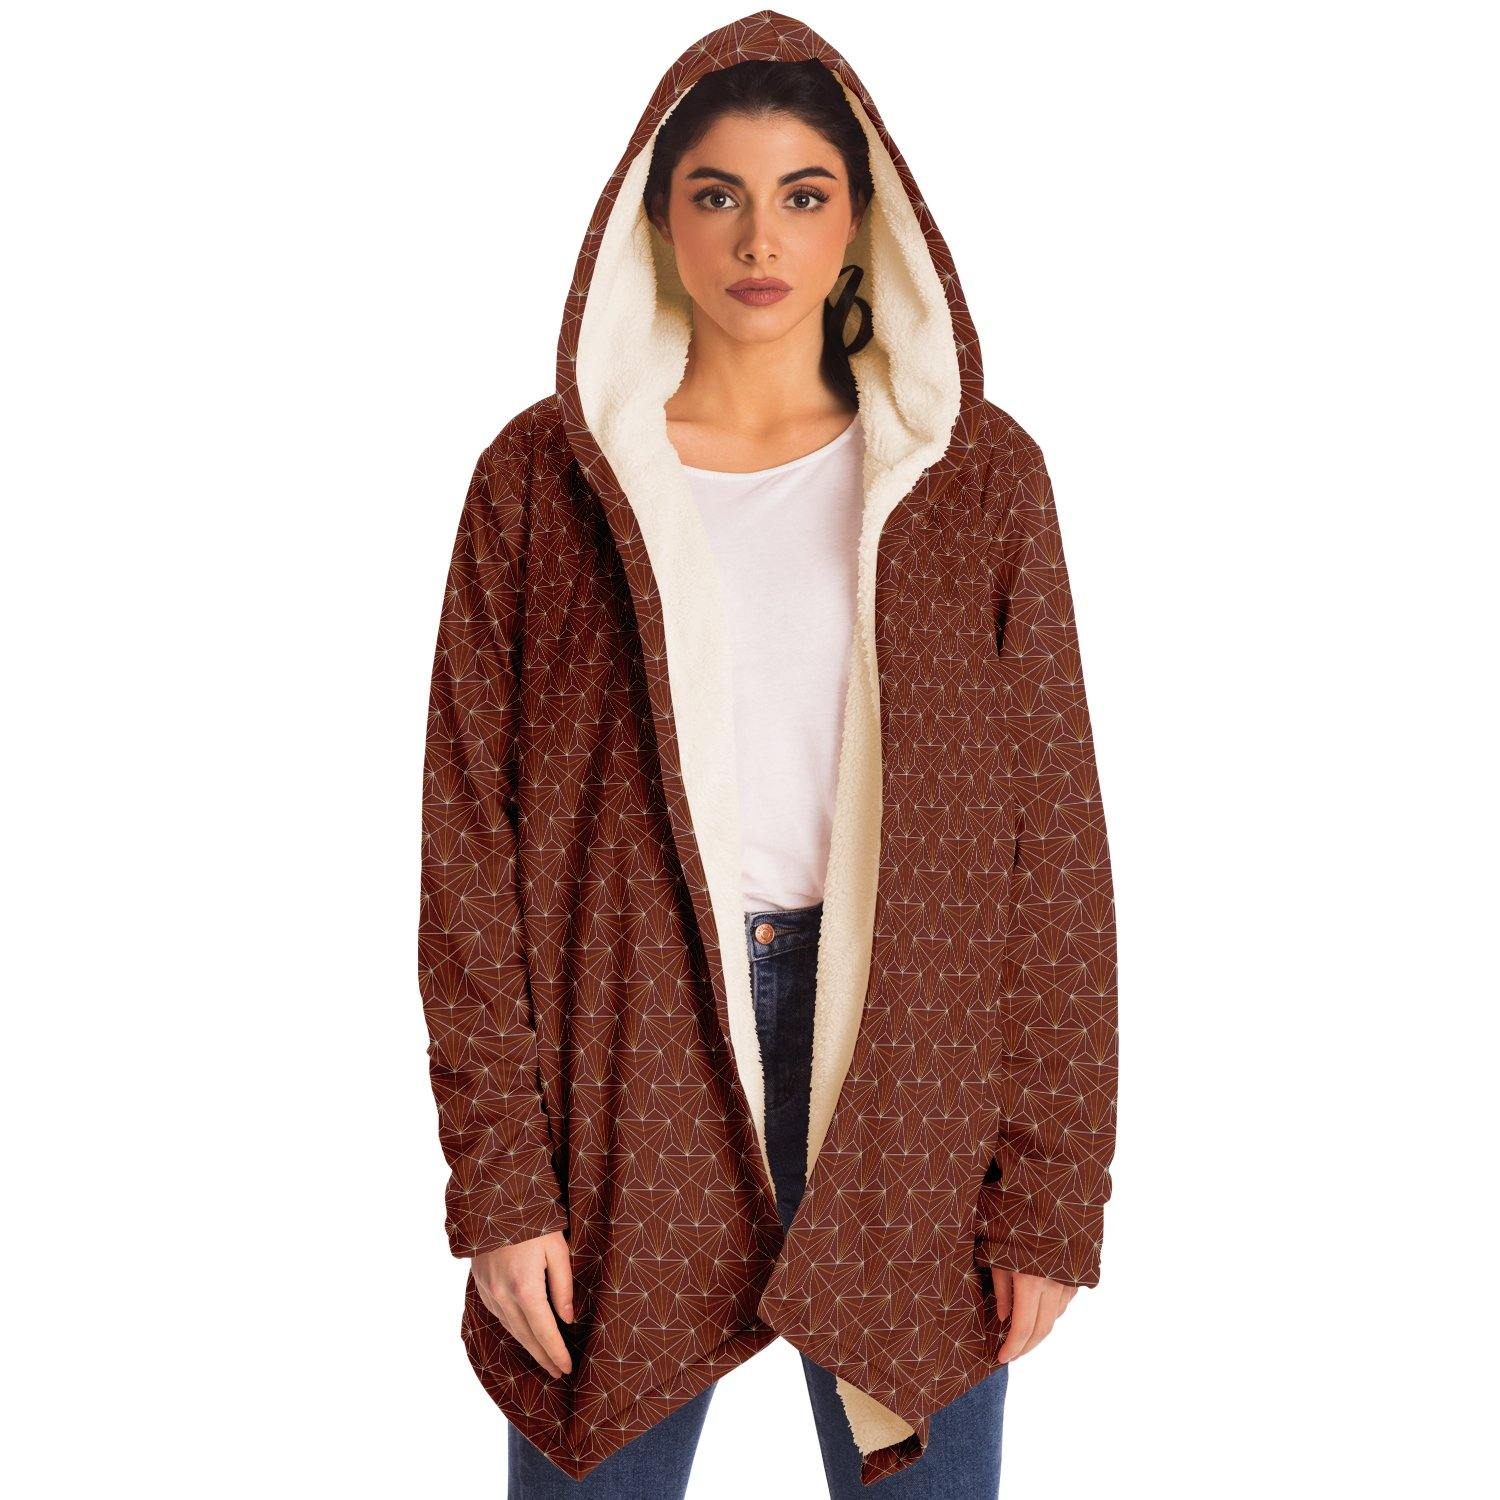 Terra Cotta Sacred Connections Premium Sherpa Cloak - Manifestie